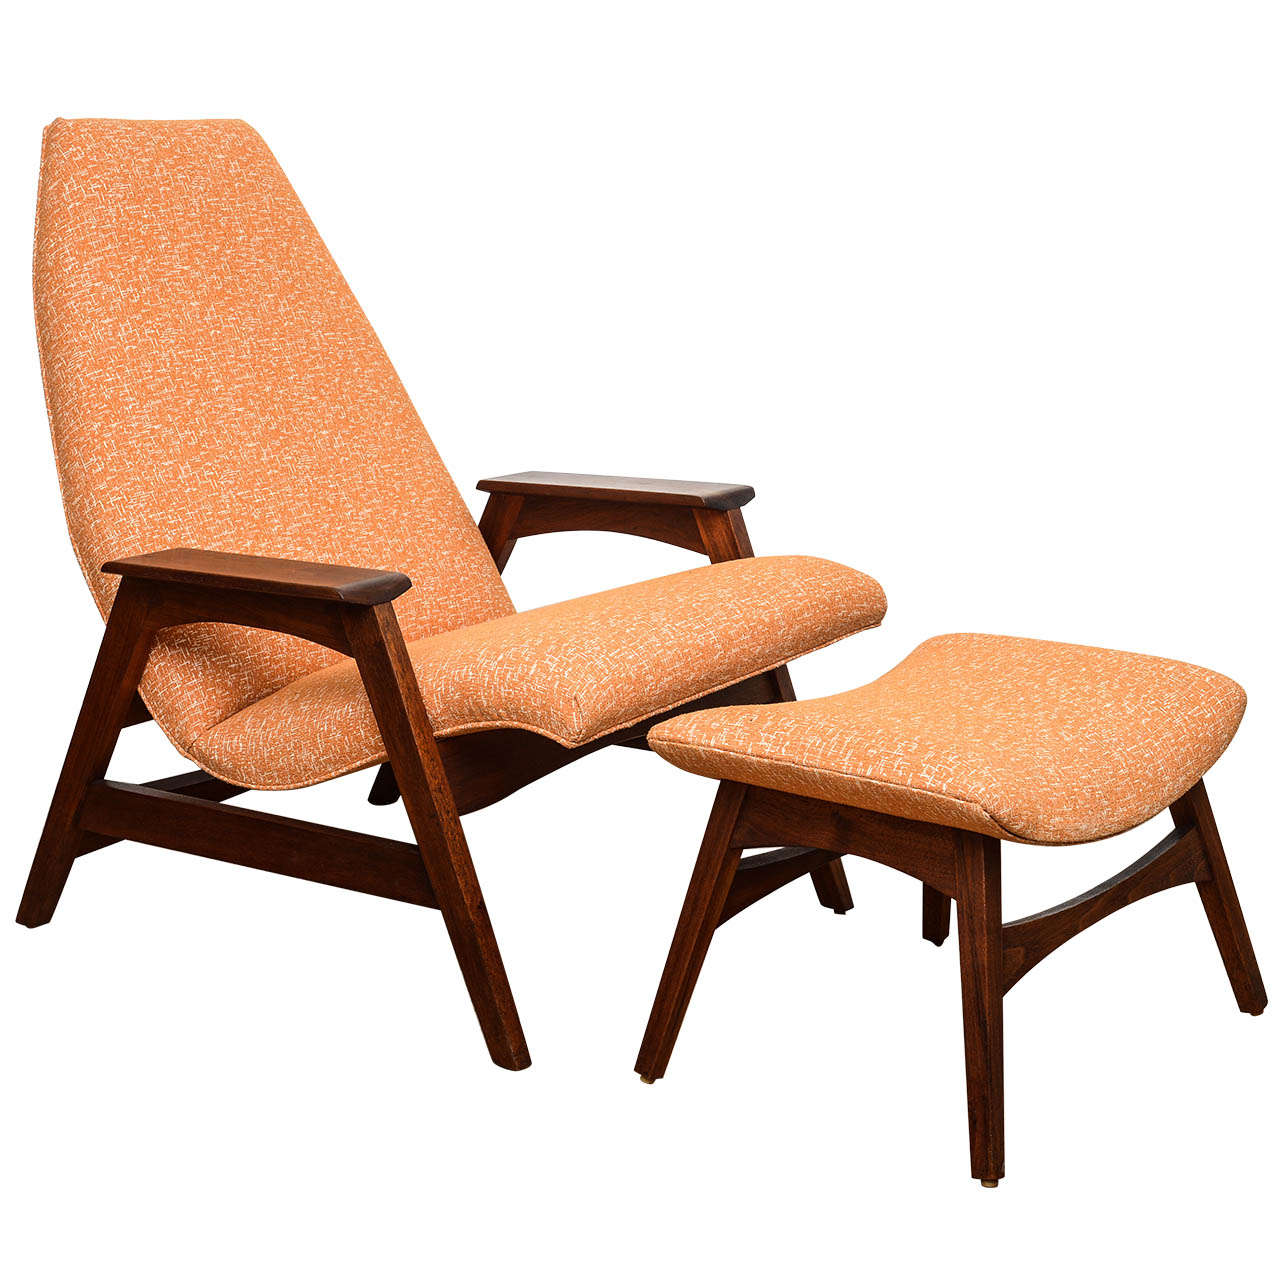 Mid Century Chair And Ottoman Sculptural Mid Century Chair And Ottoman Attributed To